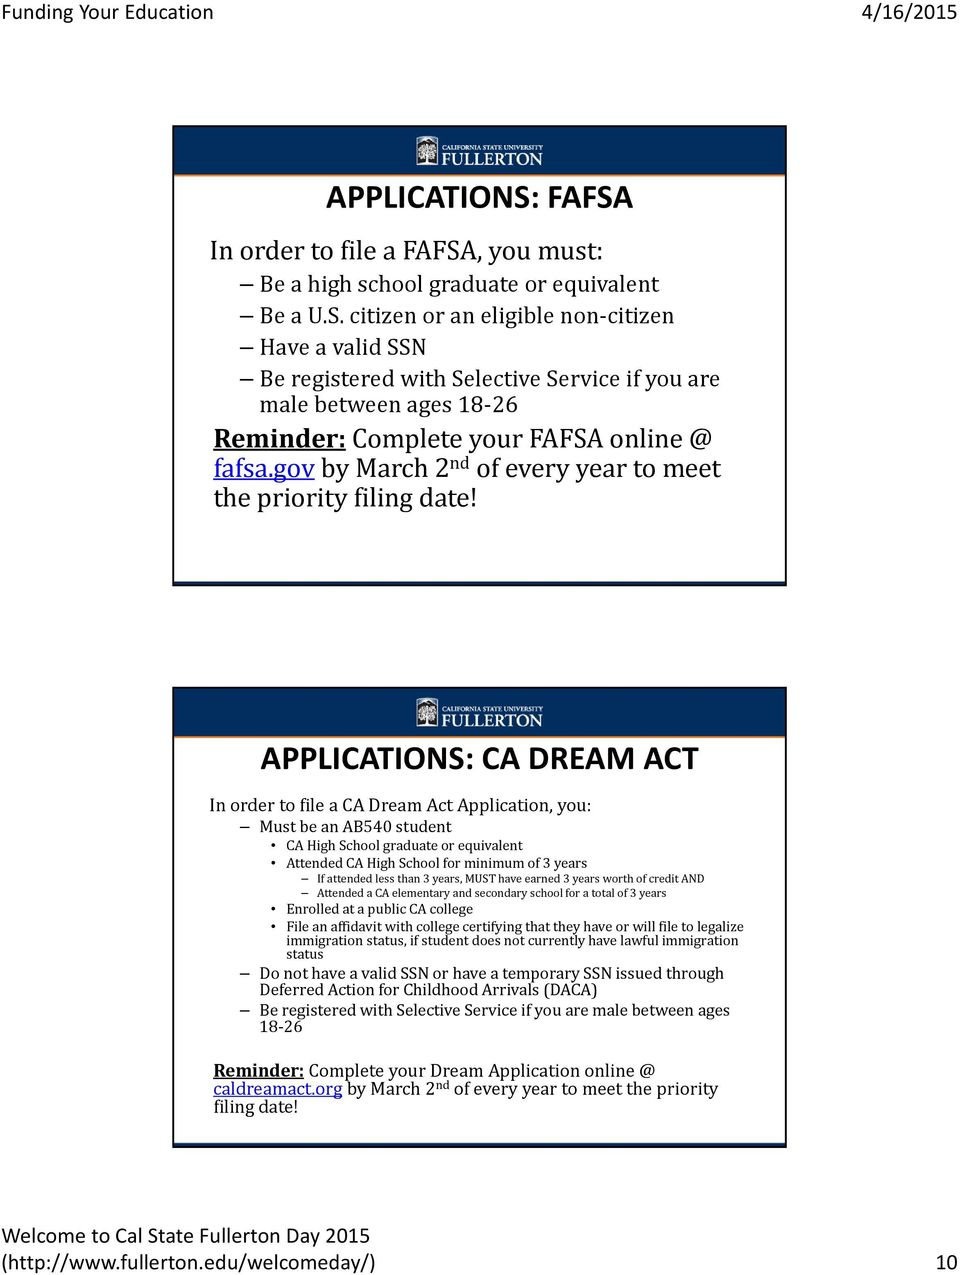 APPLICATIONS: CA DREAM ACT In order to file a CA Dream Act Application, you: Must be an AB540 student CA High School graduate or equivalent Attended CA High School for minimum of 3 years If attended